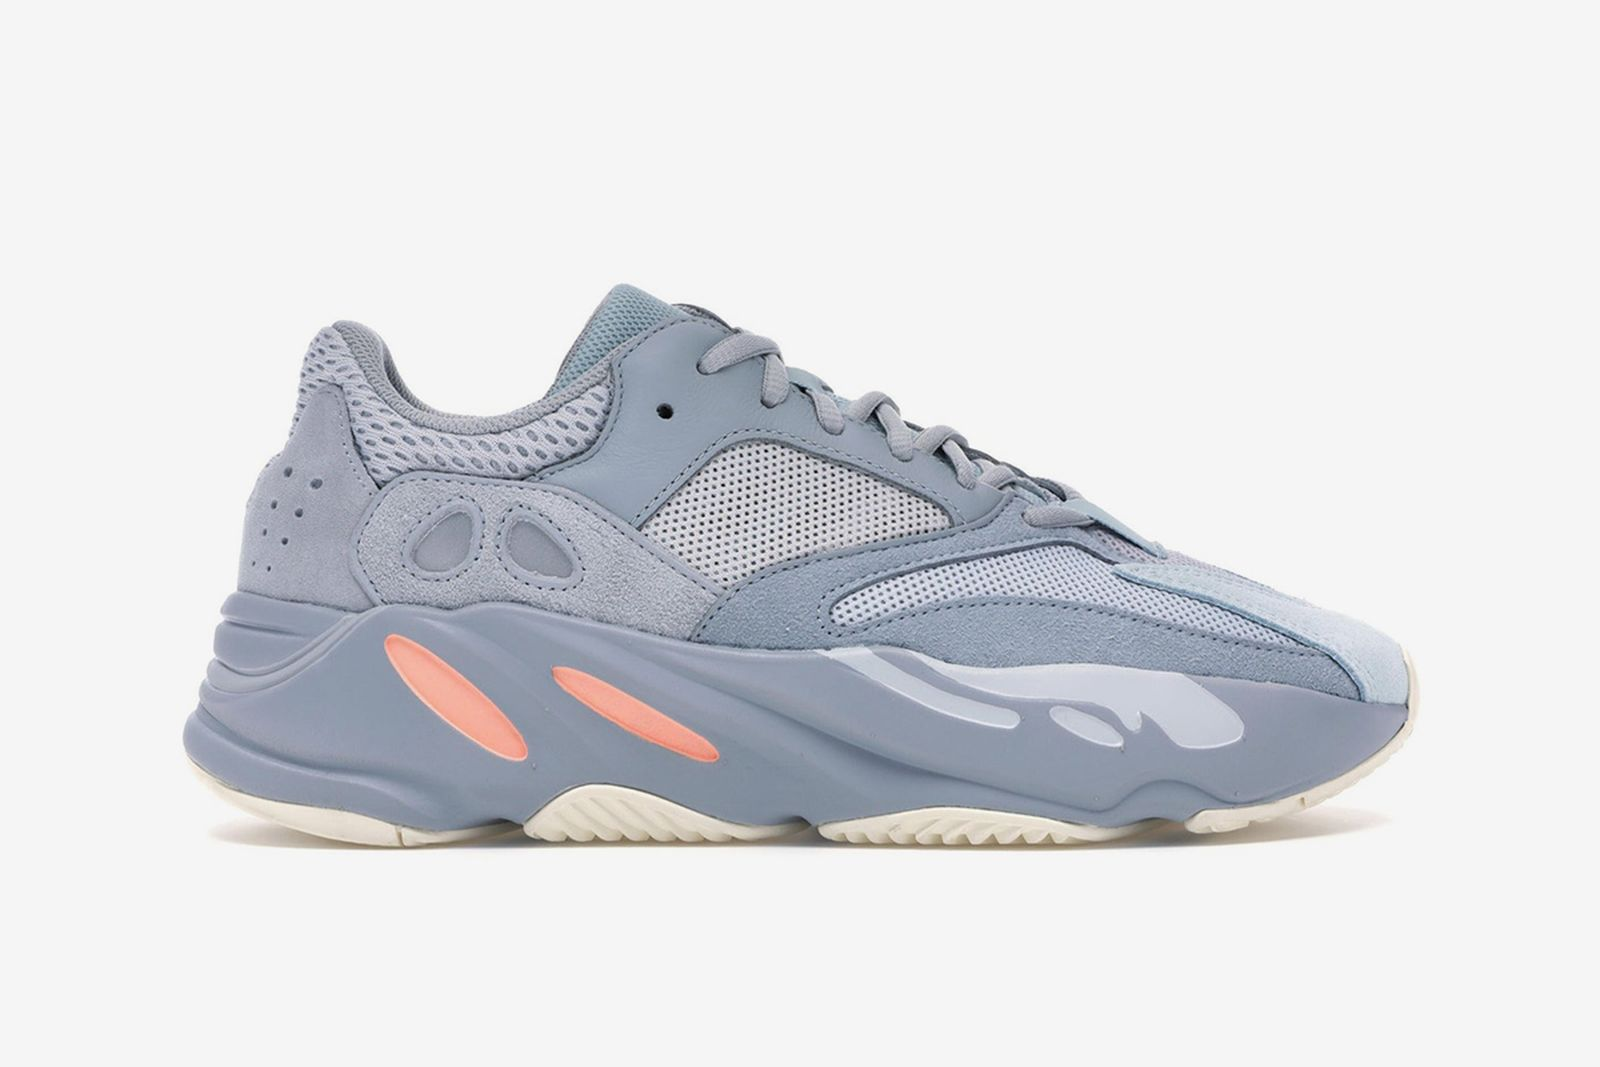 adidas yeezy guide 02 adidas yeezy guide wave runner 700 StockX Grailed adidas Originals ebay